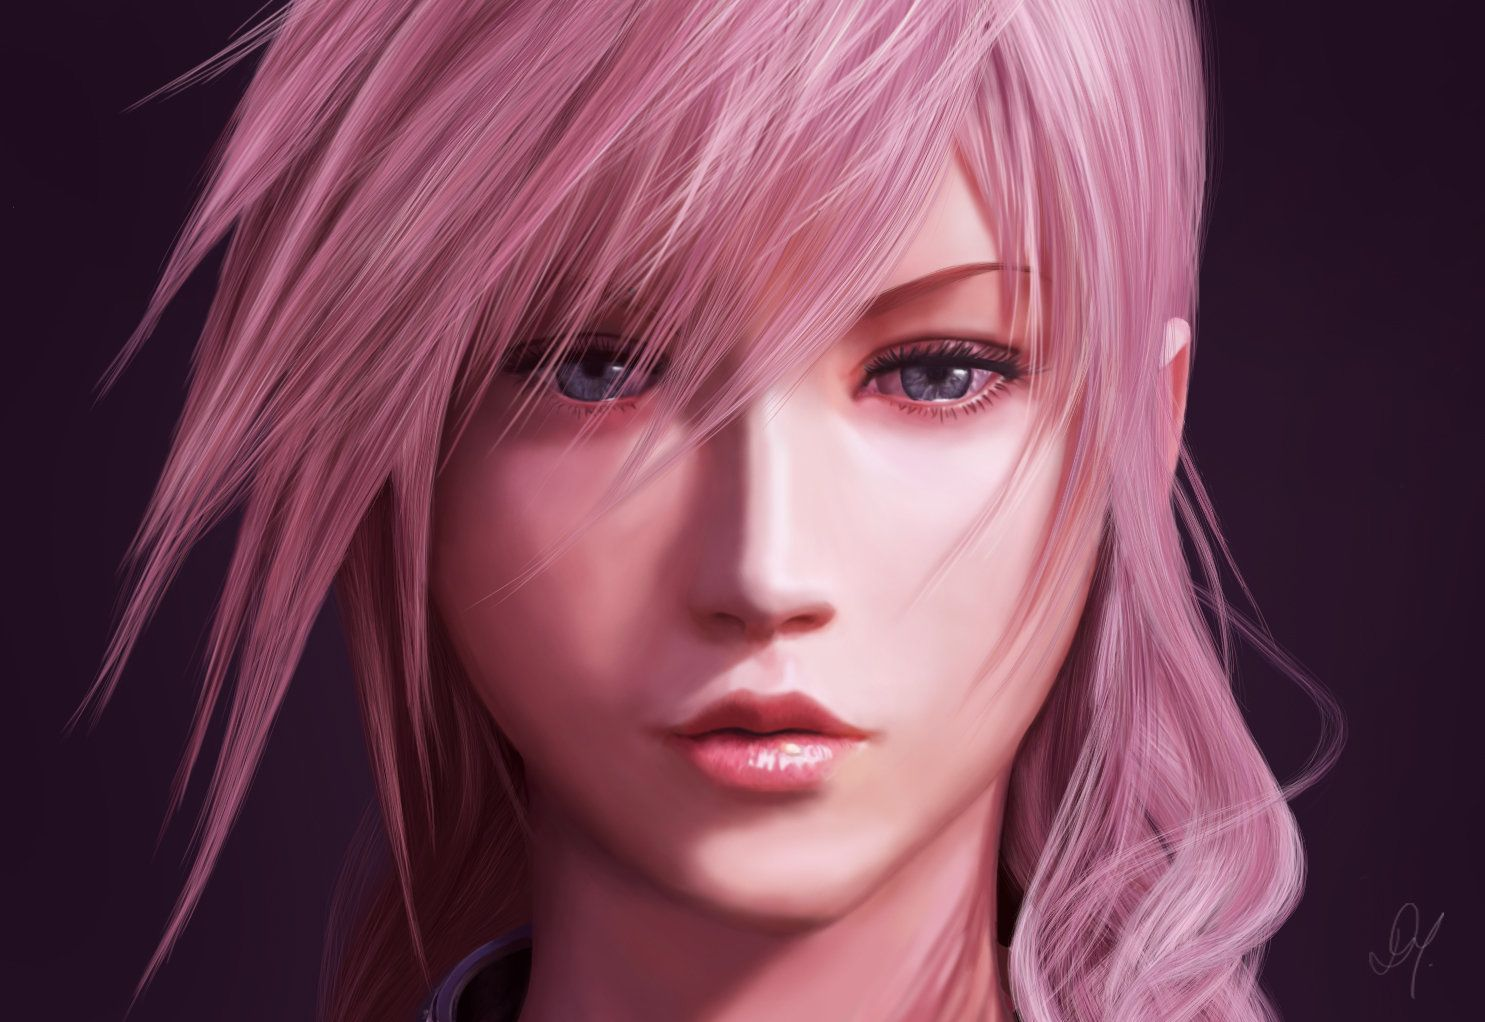 Lightning - Final Fantasy XXIII, Day Montenegro on ArtStation at https://www.artstation.com/artwork/lightning-final-fantasy-xxiii